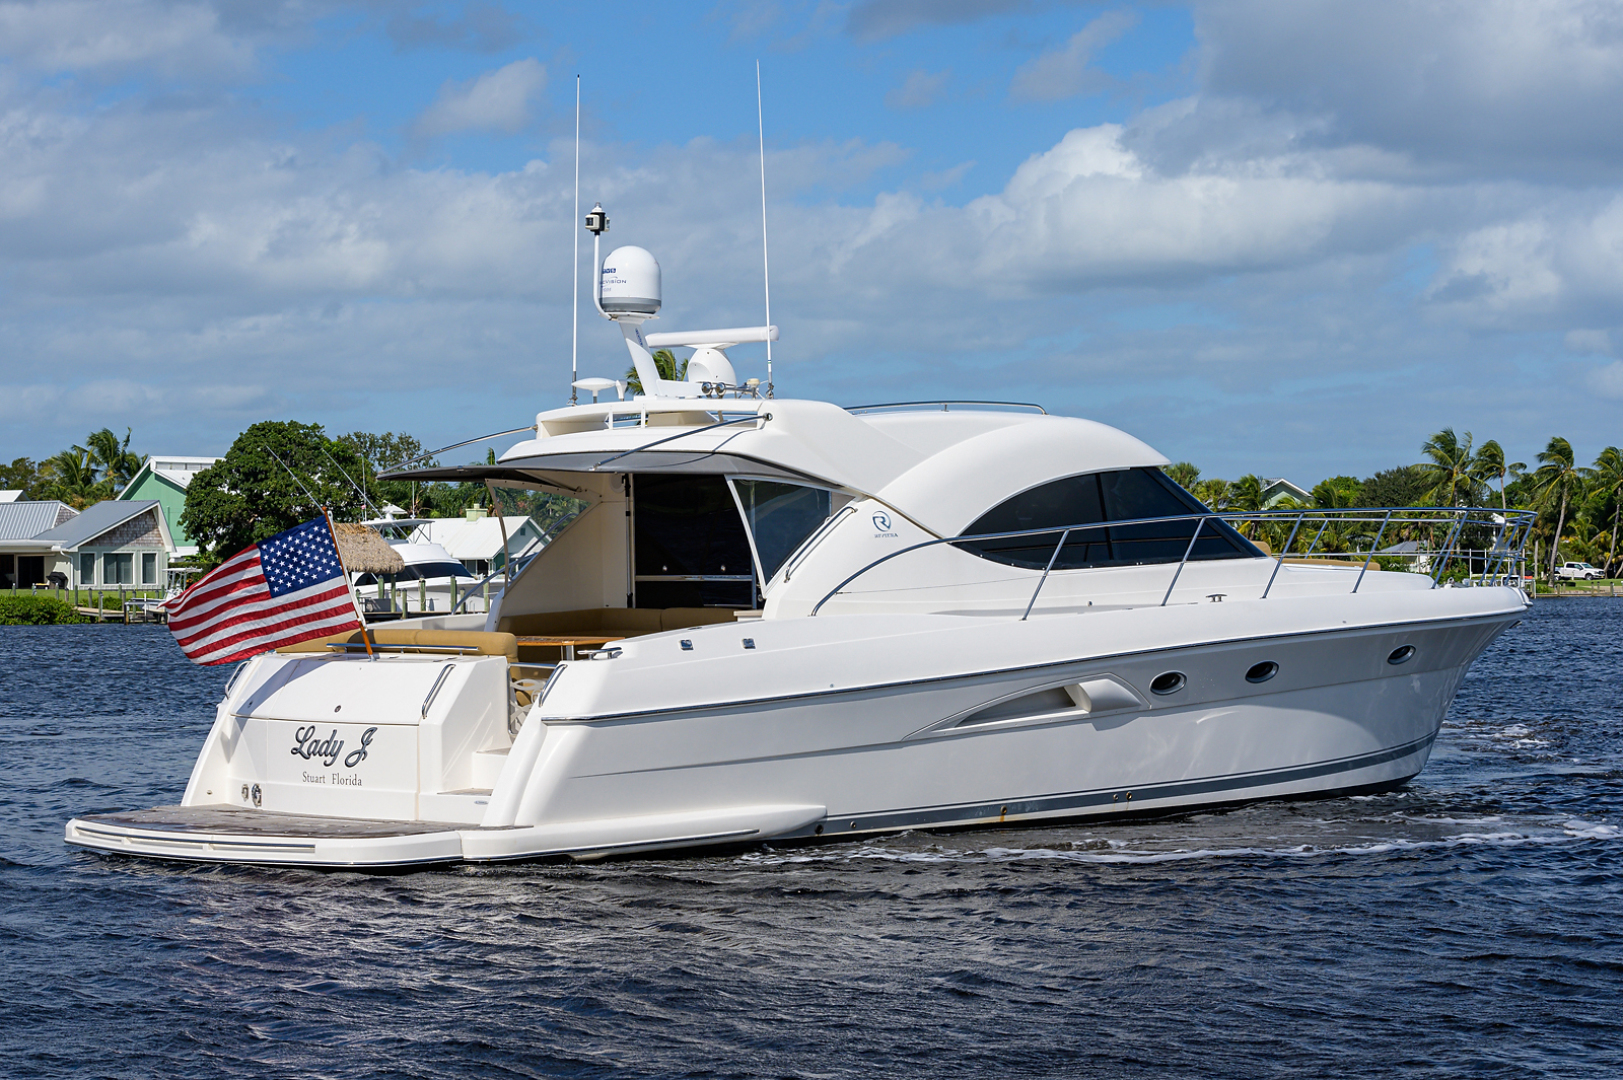 Riviera-5000 Sport Yacht 2012-Lady J Palm Beach-Florida-United States-1553493 | Thumbnail